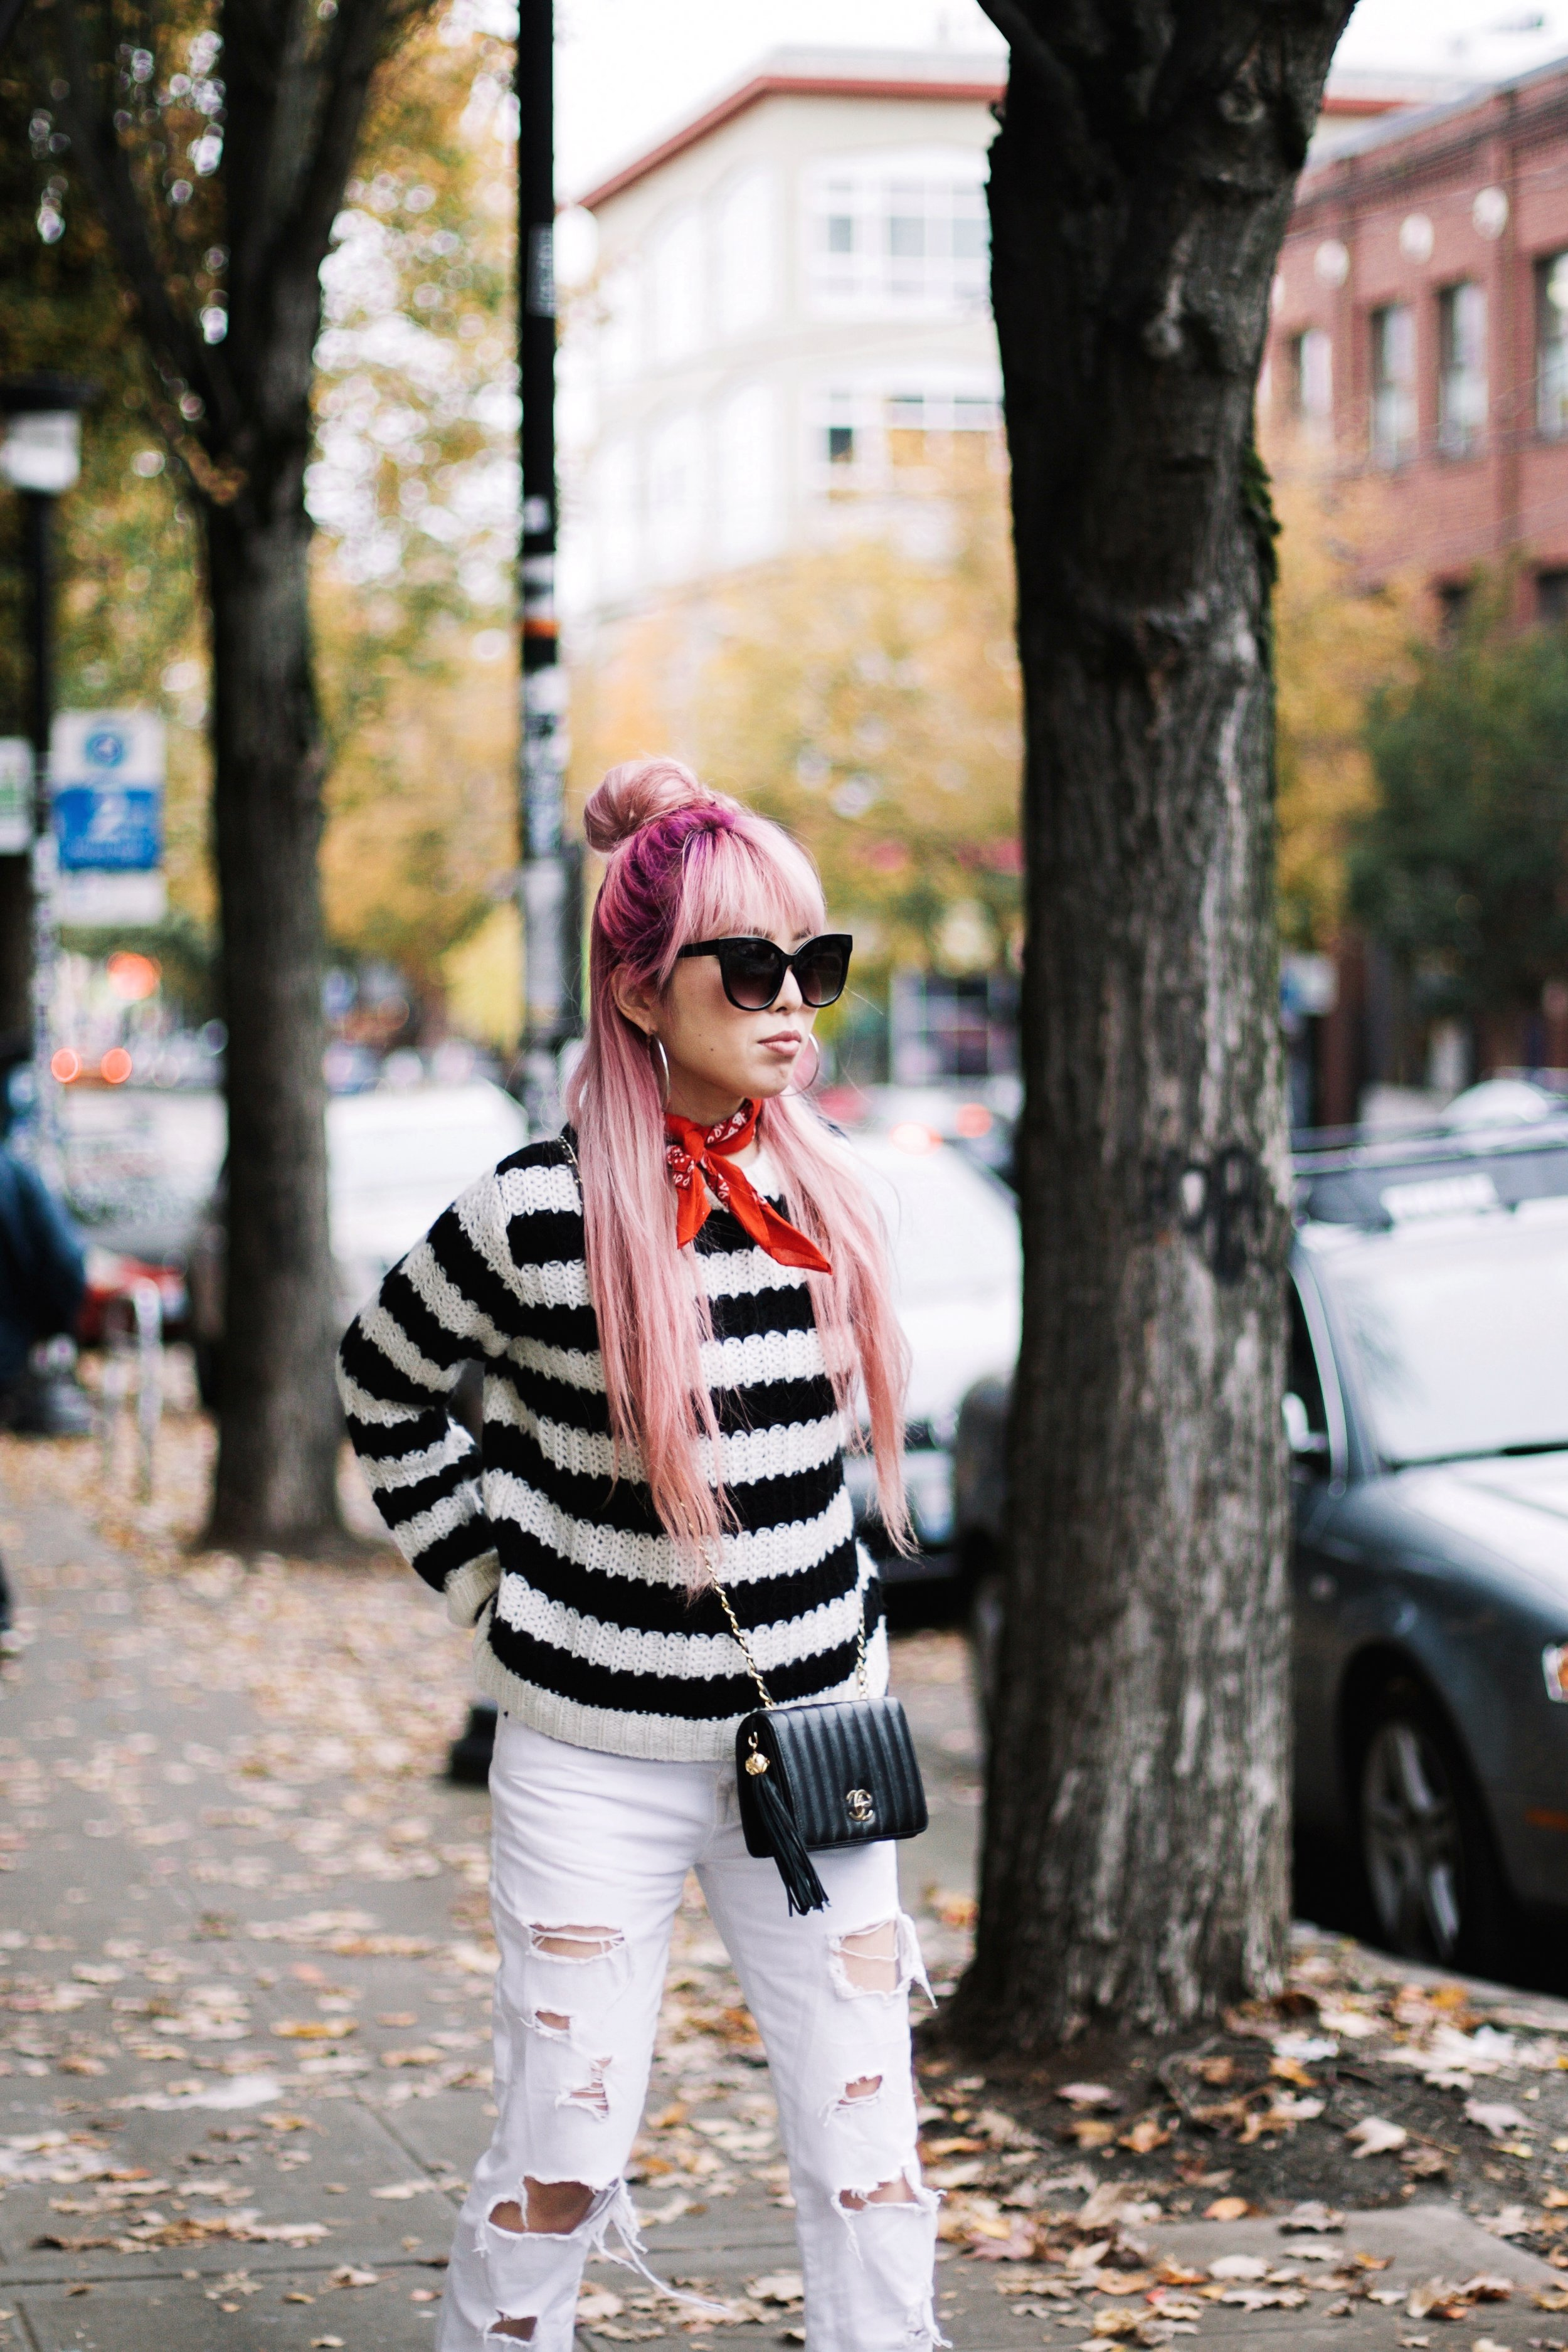 Urban Outfitters Sunglasses & Red bandana-Who What Wear Striped Crew Sweater-Target-Zara Distressed white boyfriend Jeans & Black Sheer Top-Vintage Chanel Crossbody Bag-ASOS Ankle Strap Sandals-Christian Paul Grid White Watch-Aika's Love Closet-Seattle Fashion Blogger-Japanese-Pink Hair-Half Top Knot Hair 2